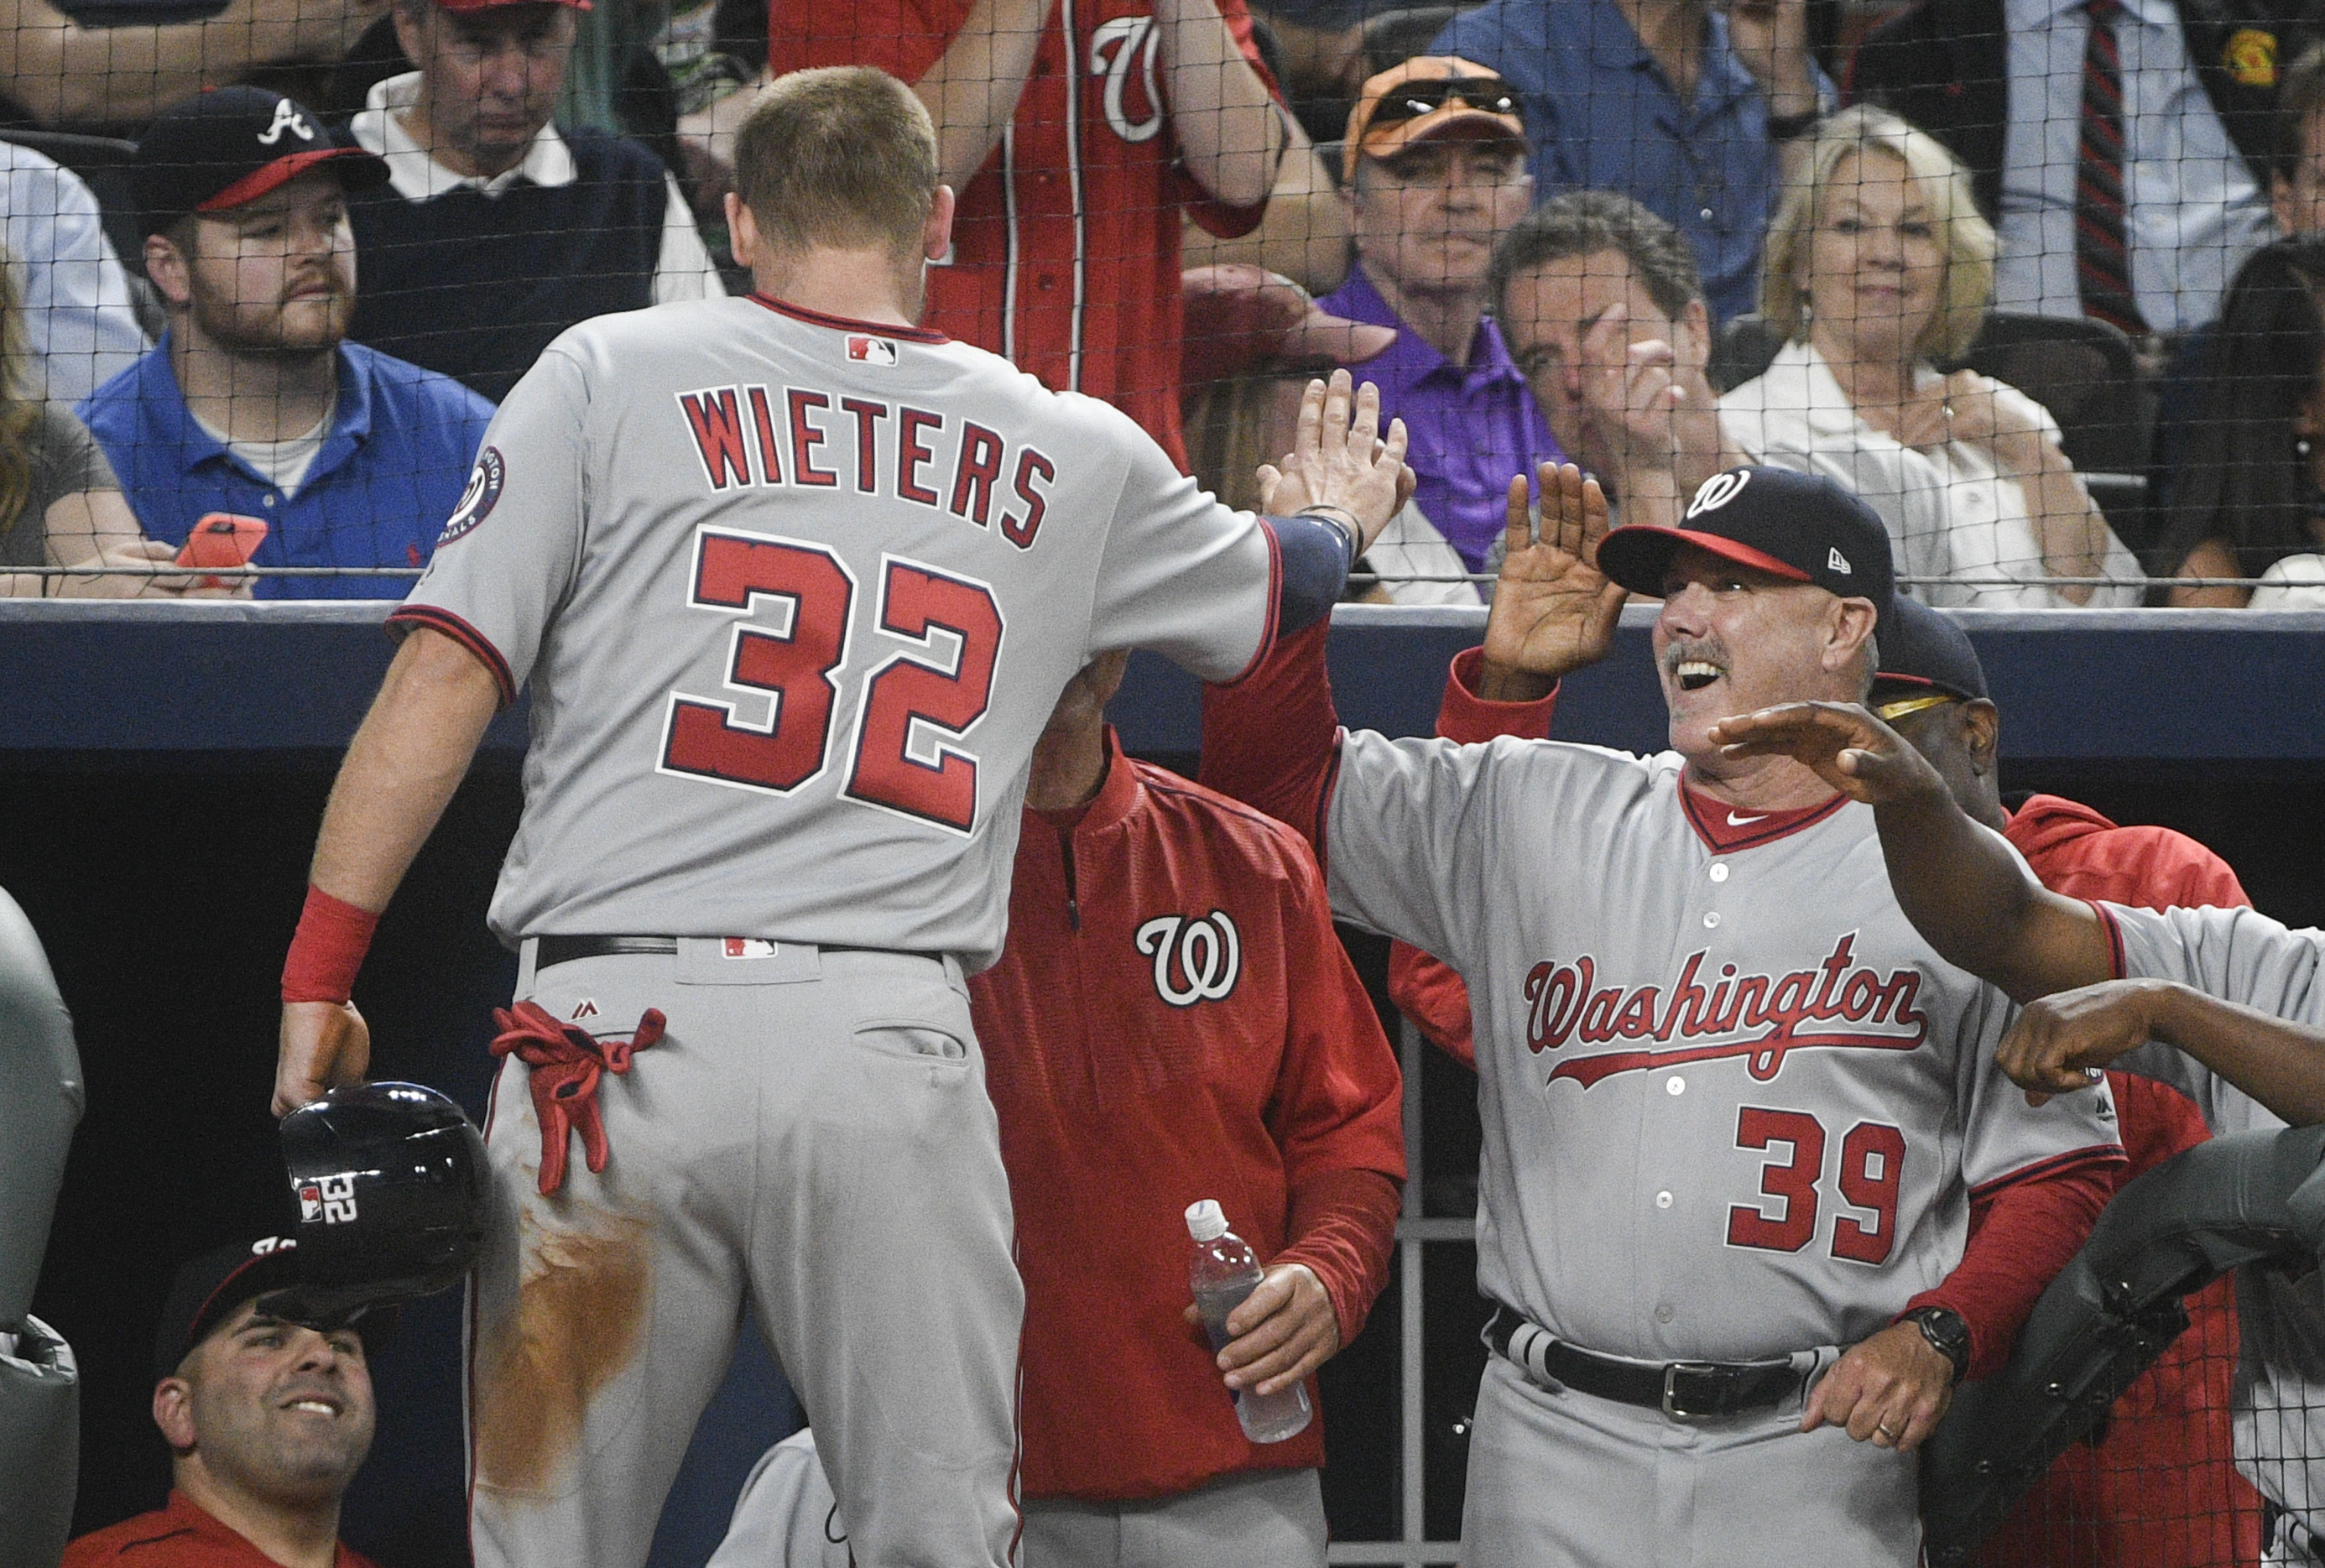 Washington Nationals catcher Matt Wieters (32) is congratulated in the dugout by hitting coach Rick Schu (39) after scoring during the fifth inning of a baseball game agains the Atlanta Braves, Tuesday, April 18, 2017, in Atlanta. (AP Photo/John Amis)